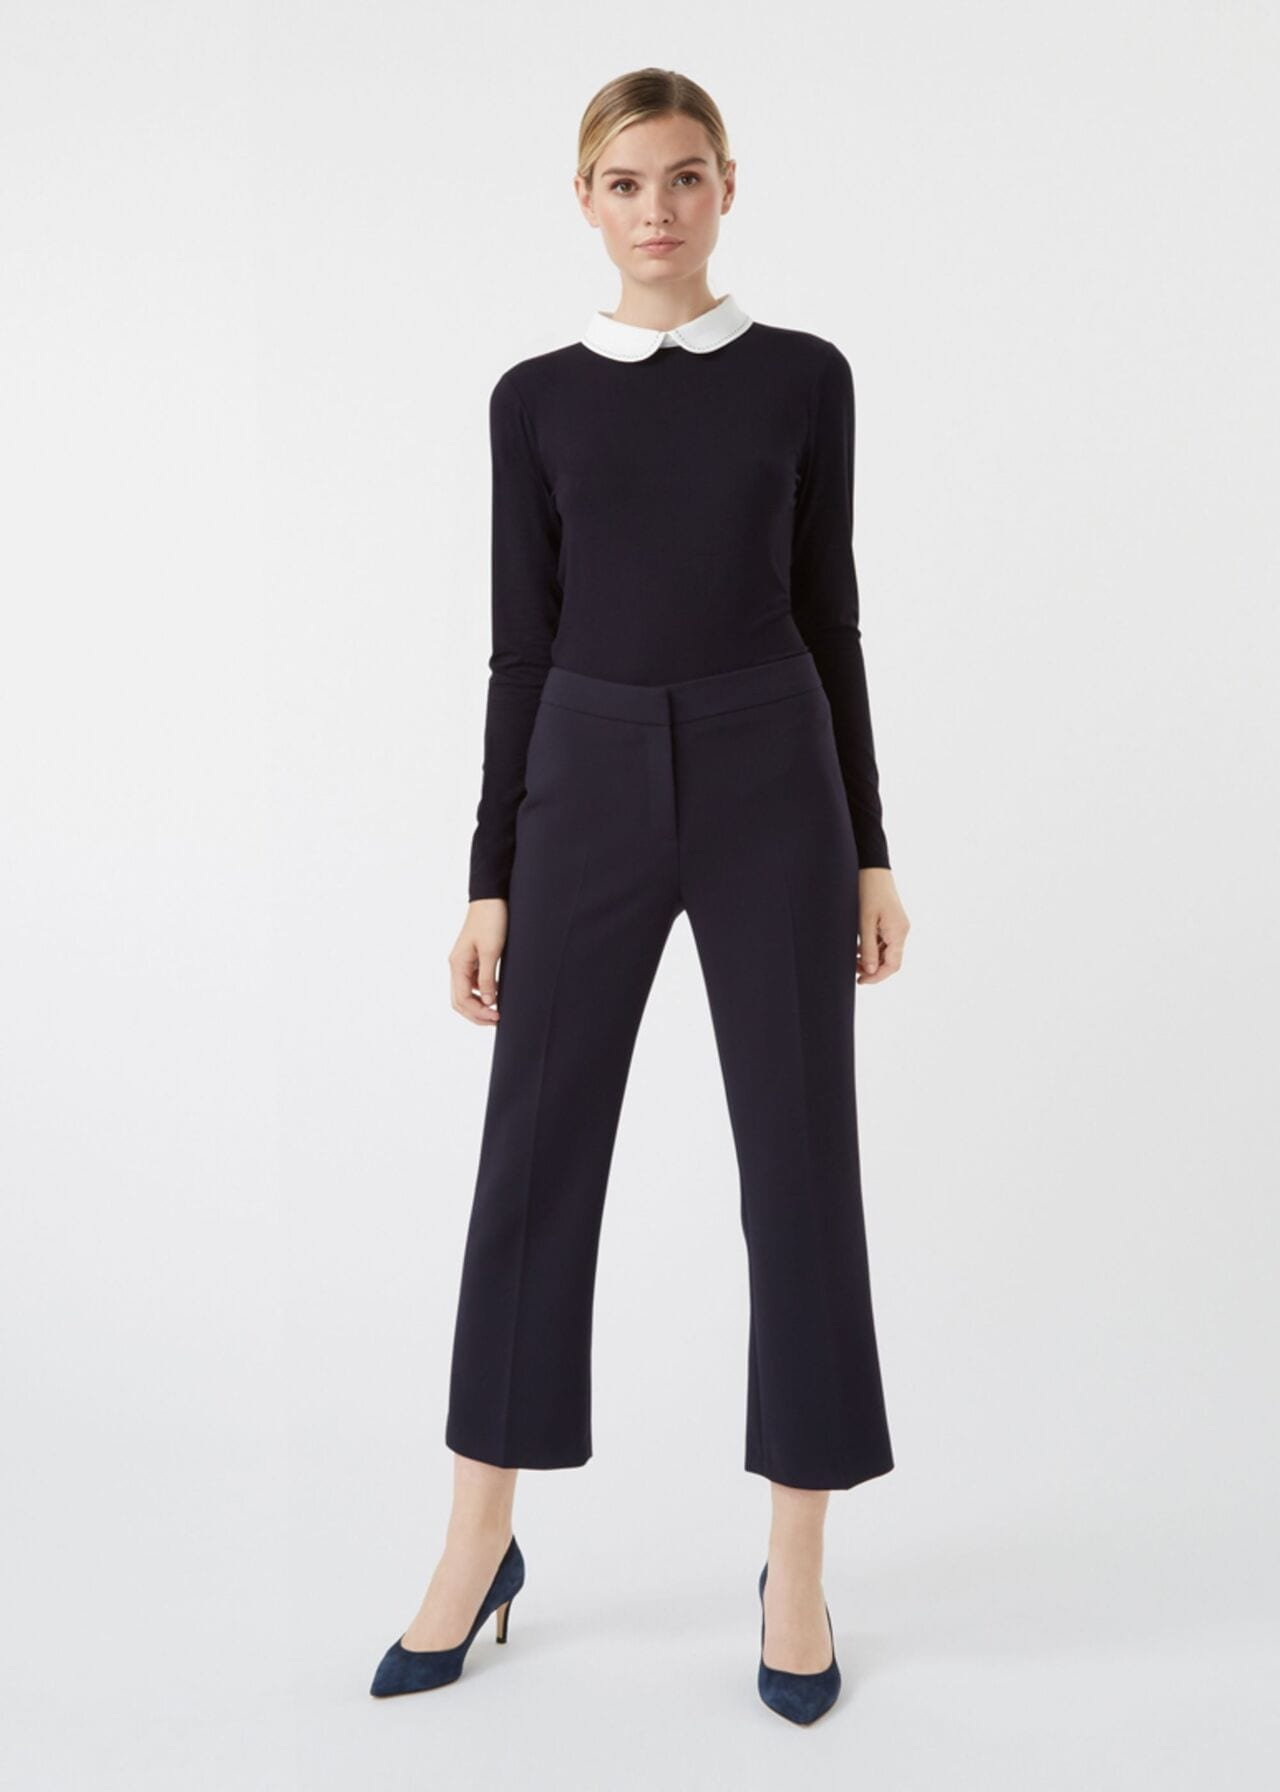 HOBBS LONDON: Up to 70% off sale styles!